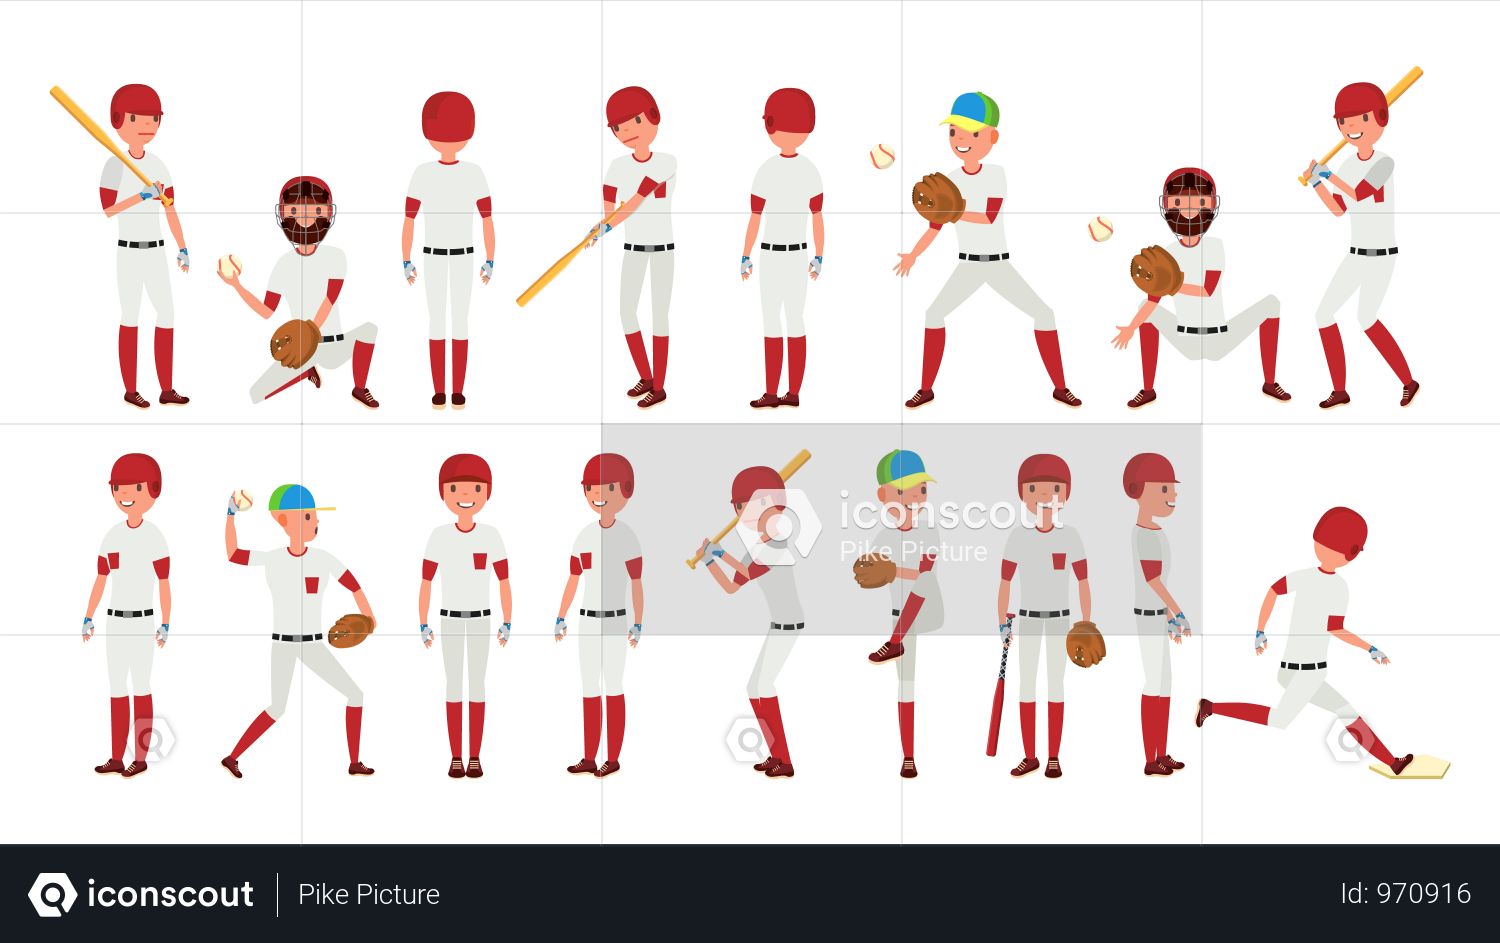 Premium Professional Baseball Player Gestures Illustration Download In Png Vector Format Baseball Players Professional Baseball Baseball